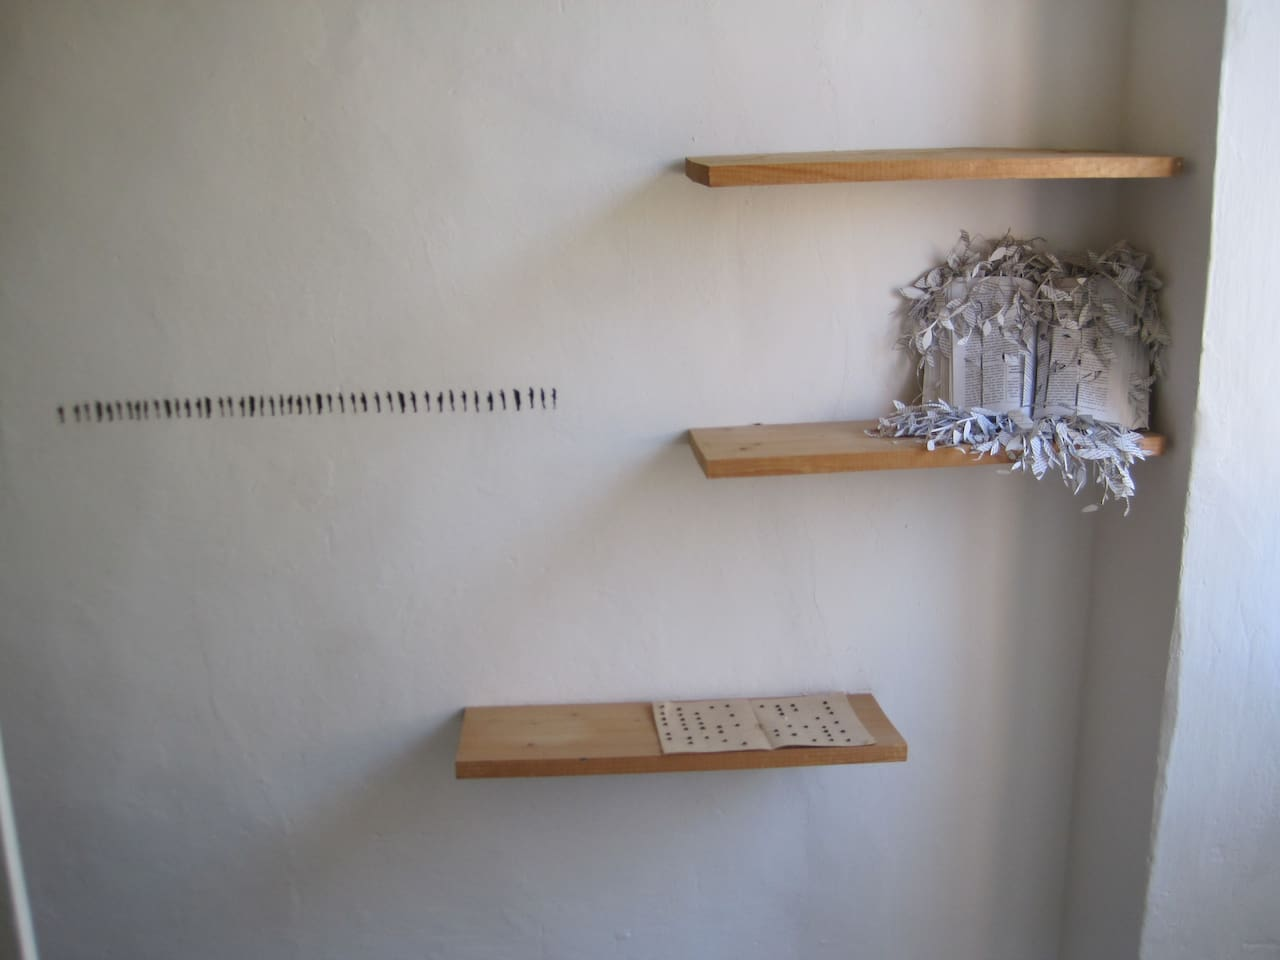 ojects art nillaojects art nilla - installed in the stairs of the house